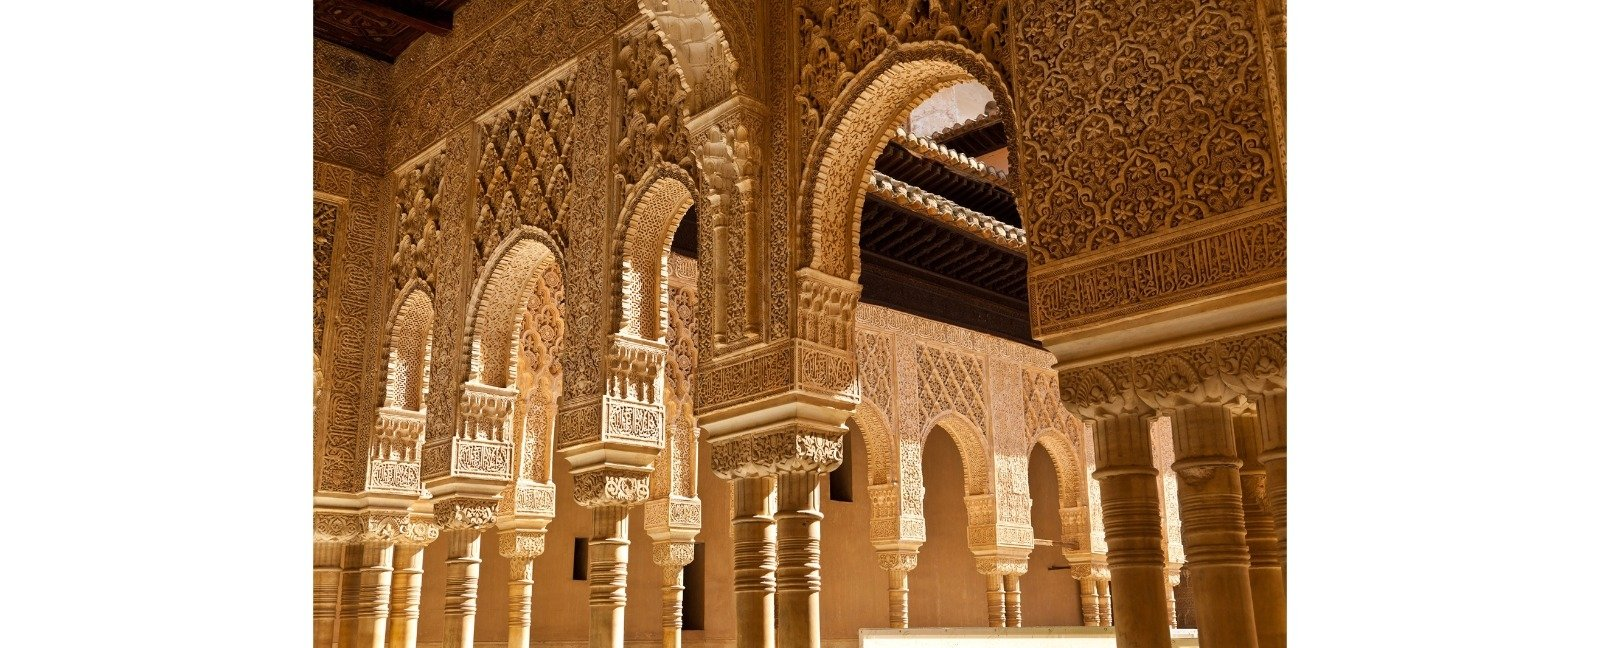 Moorish arches in the Court of the Lions at the Alhambra in Granada, southern Spain. (Shutterstock Photo)